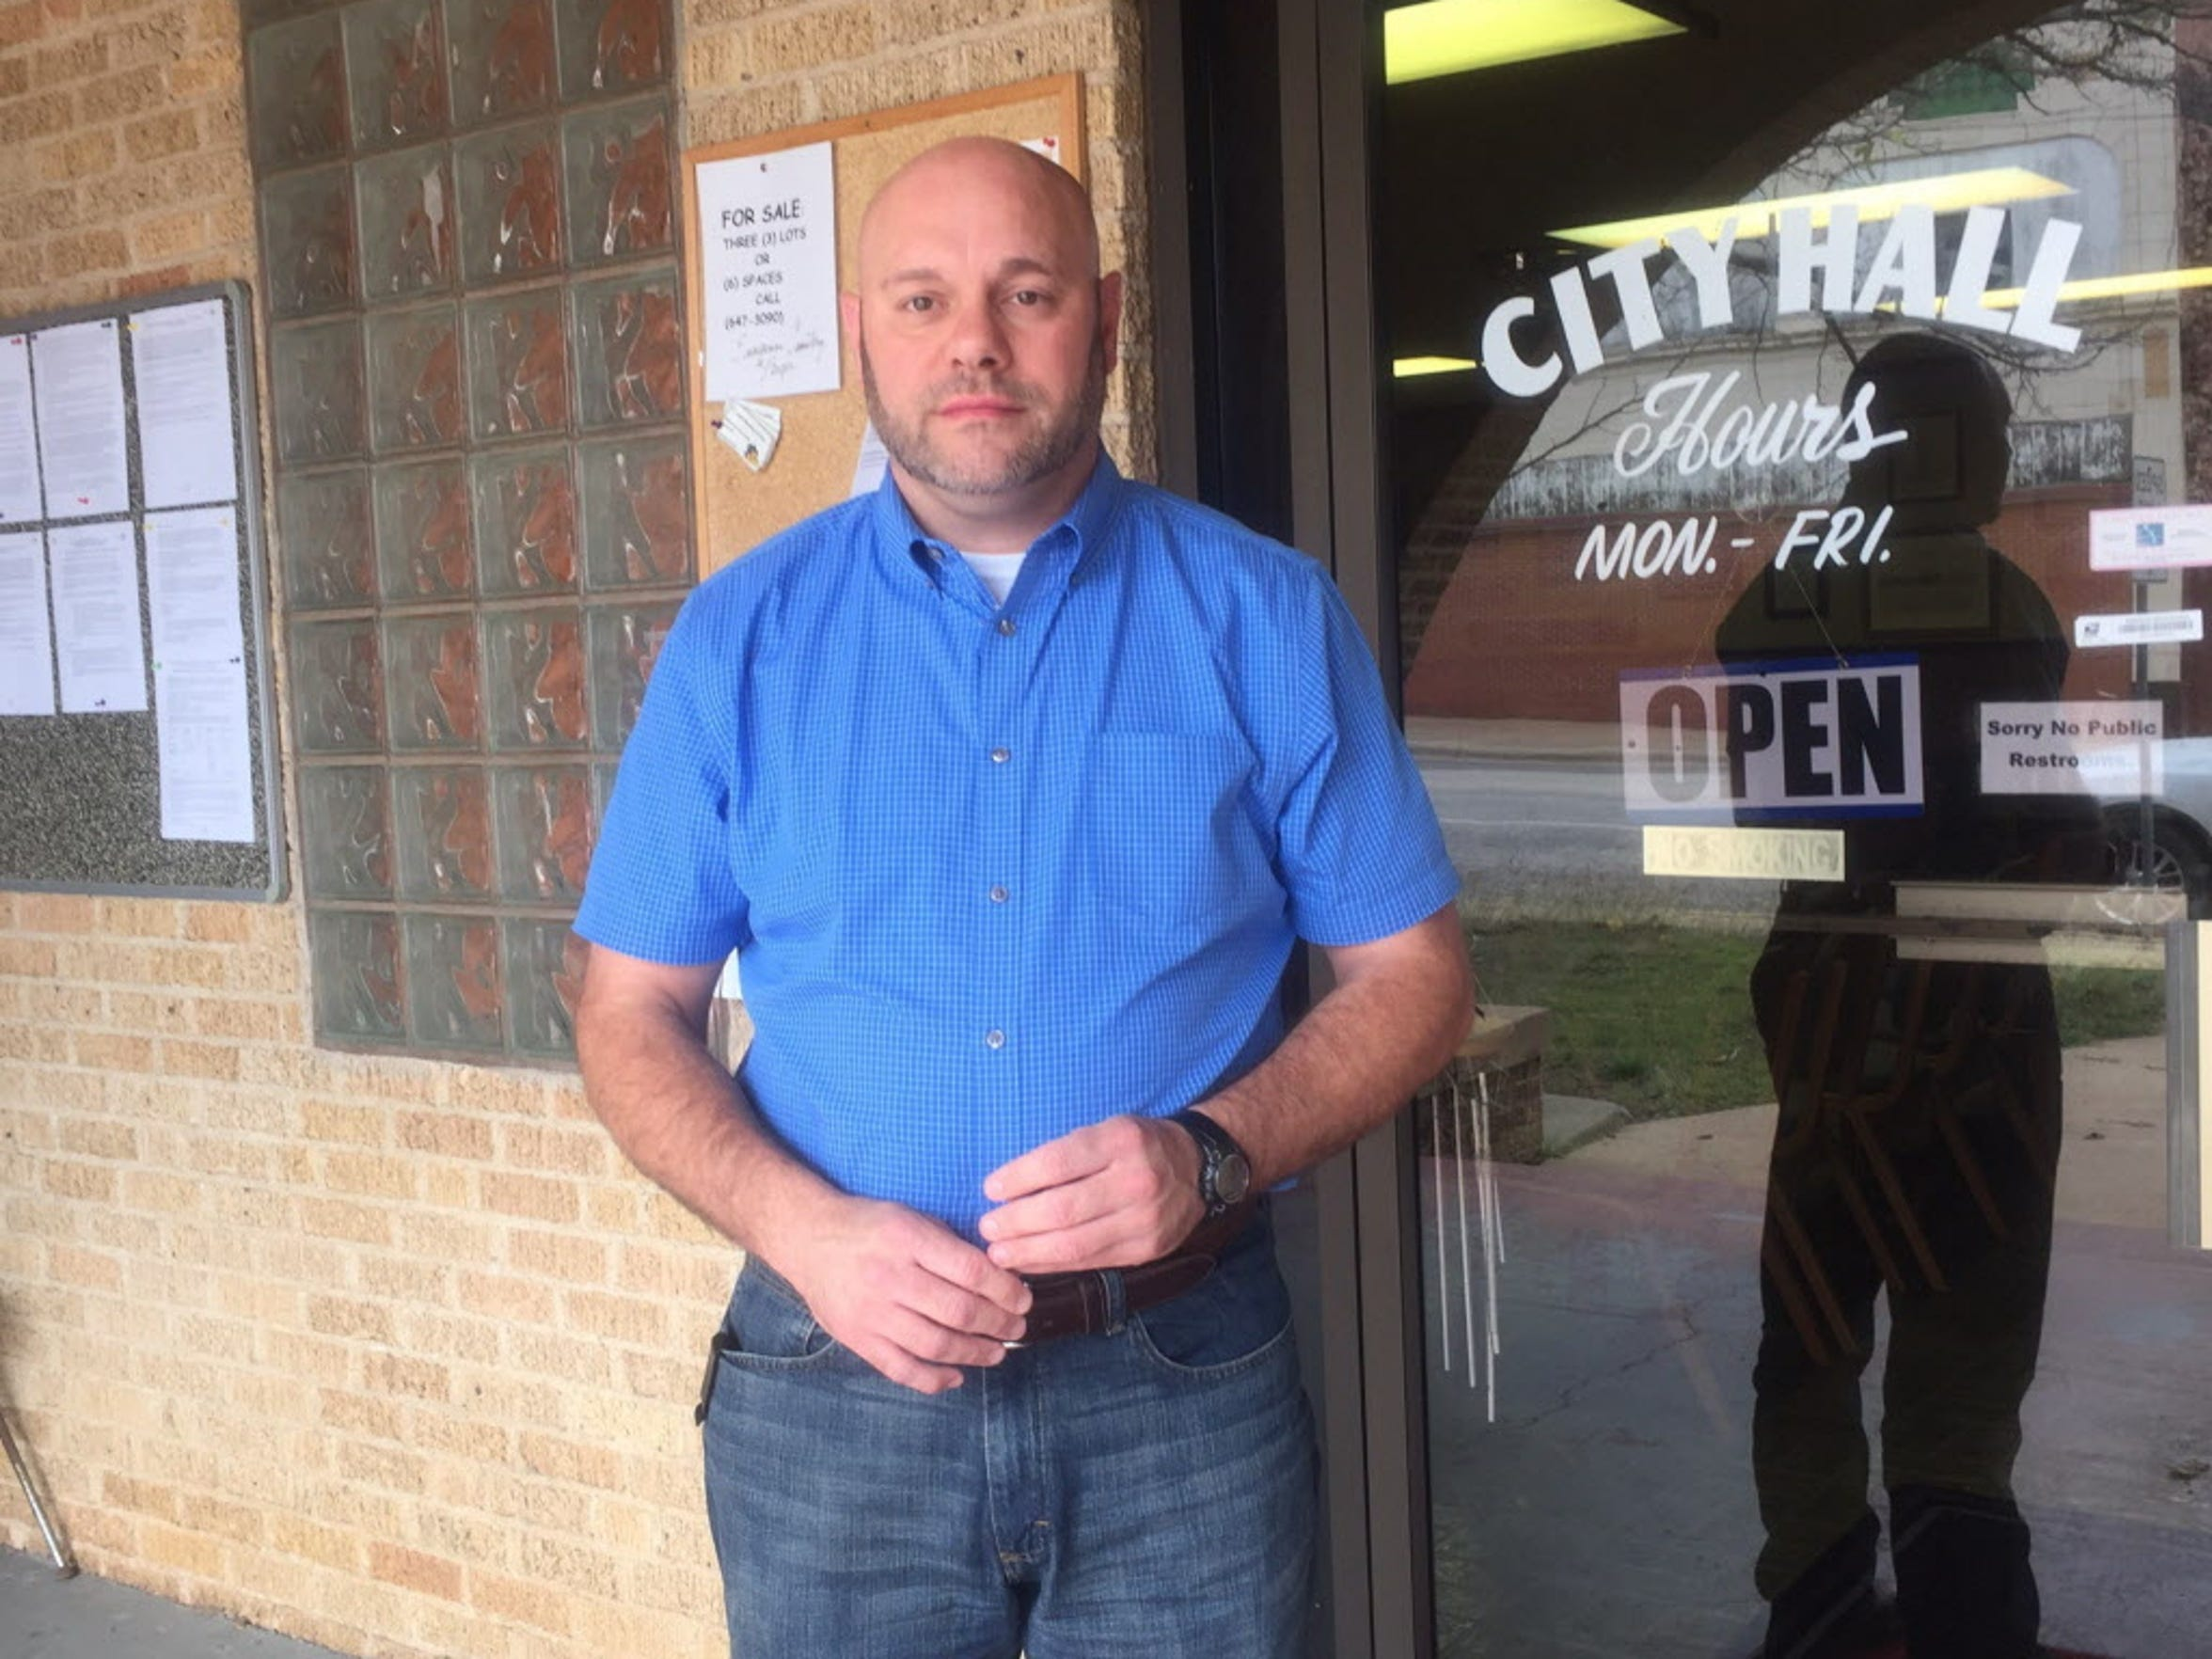 Ranger, Texas, City Manager Chad Roberts says state